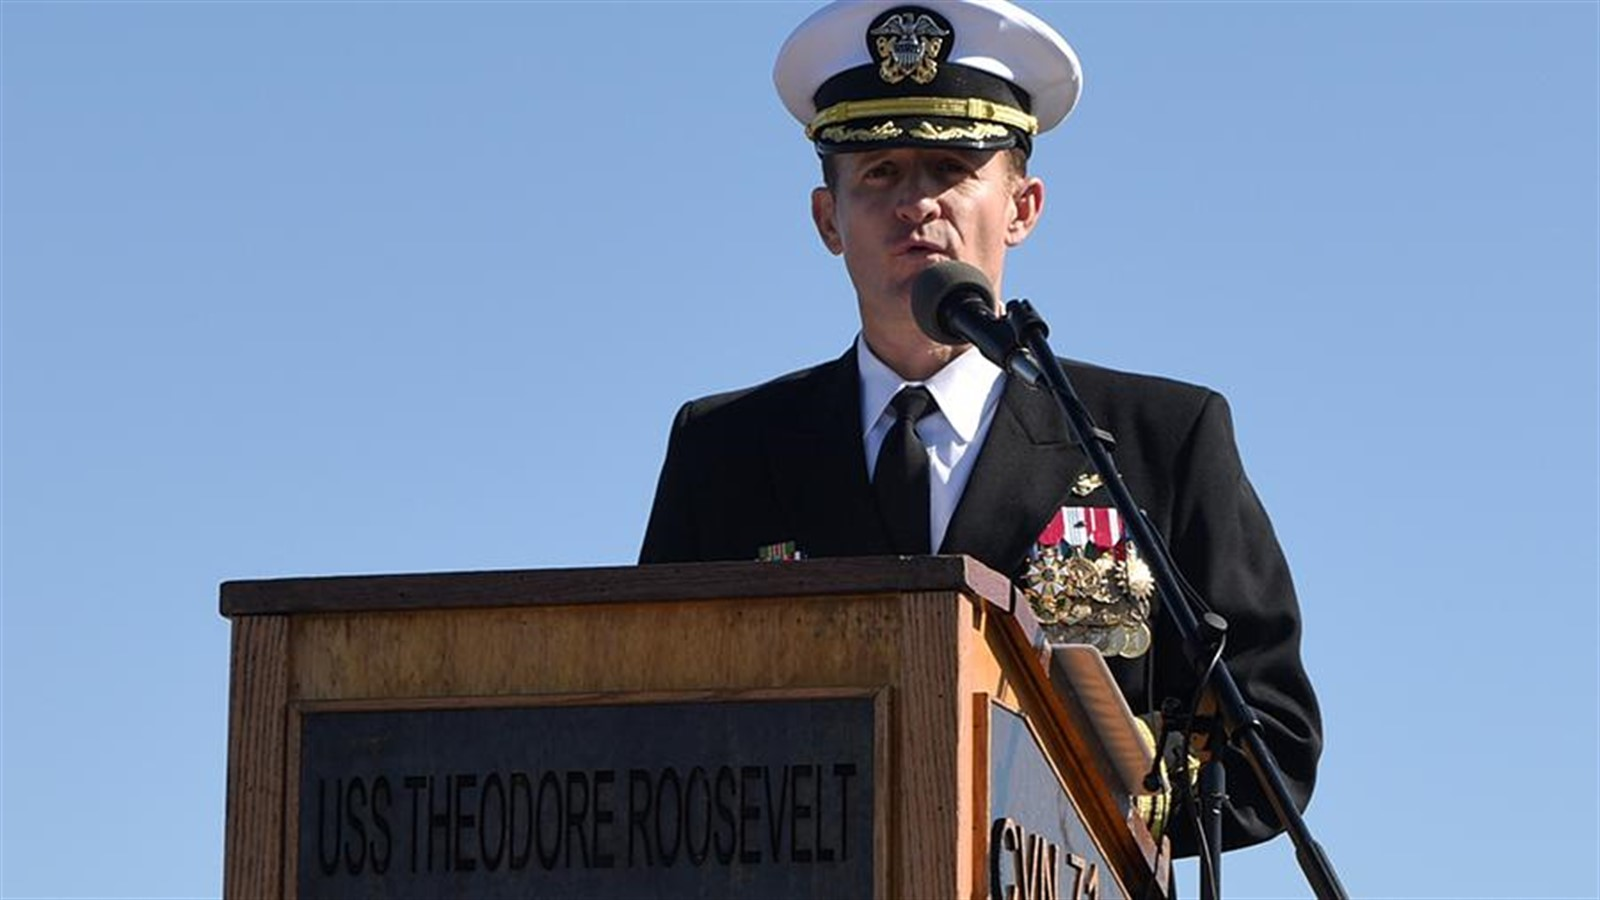 Photo of COVID-19: Trump support the removal of US aircraft carrier captain due to Coronavirus crisis